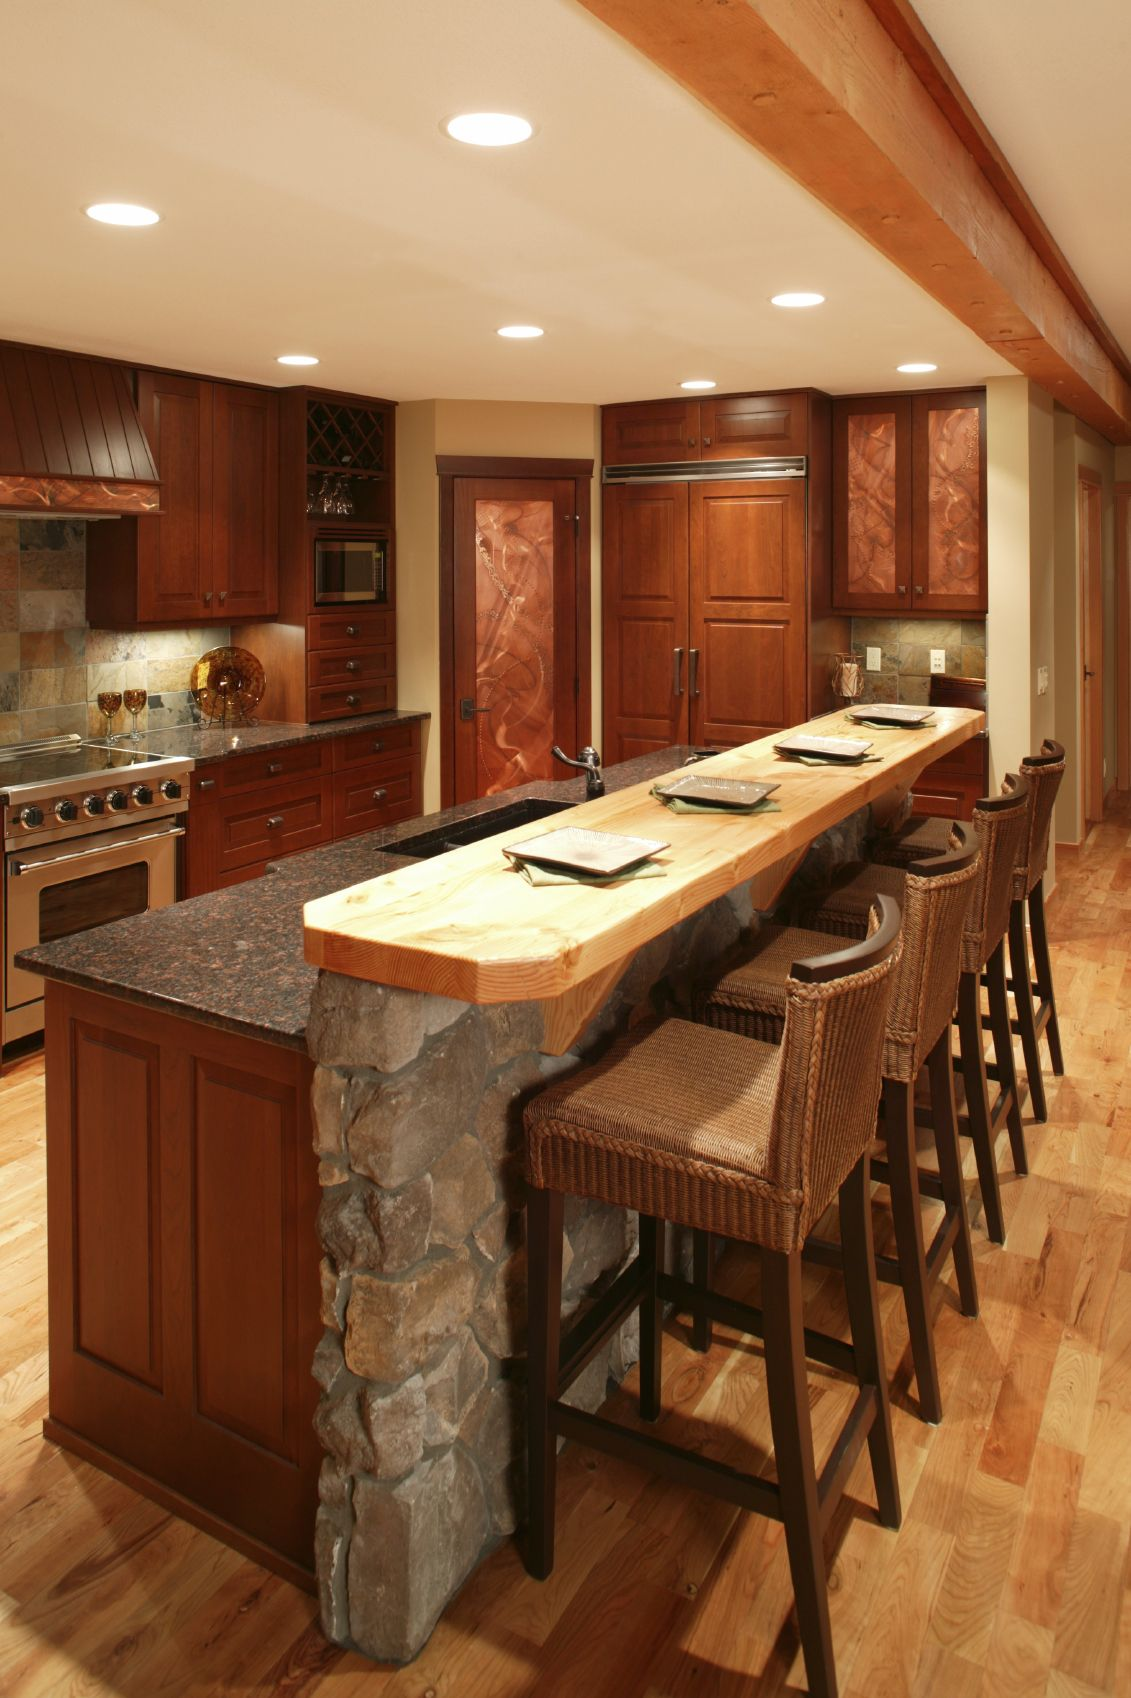 Island Comprised Of Stone Wall And Rich Wood Paneling Matching The Cabinetry Throughout This Kitchen Features Marble Countertop Raised Dining